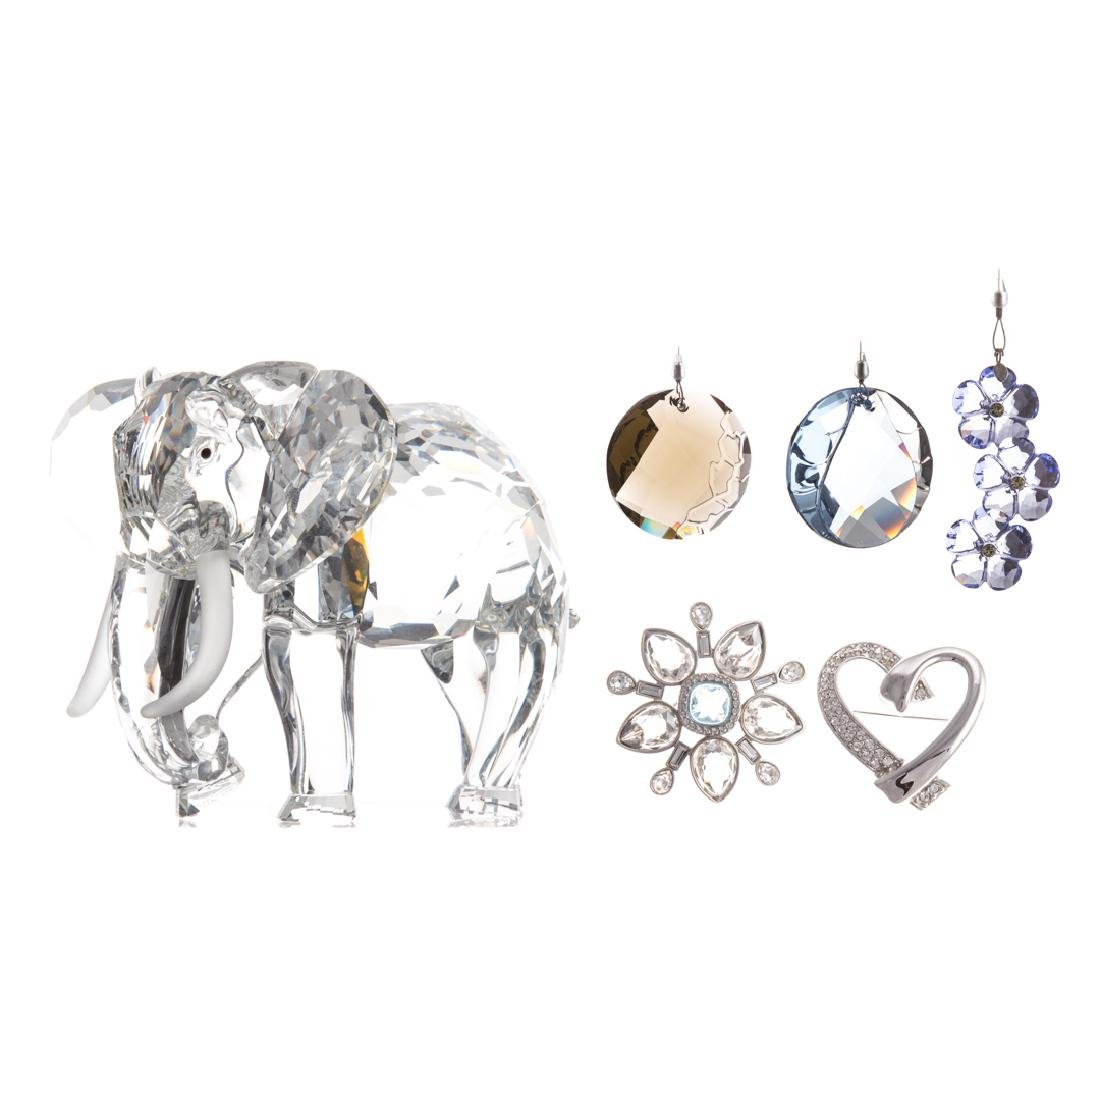 Swarovski crystal elephant and five jewelry pieces